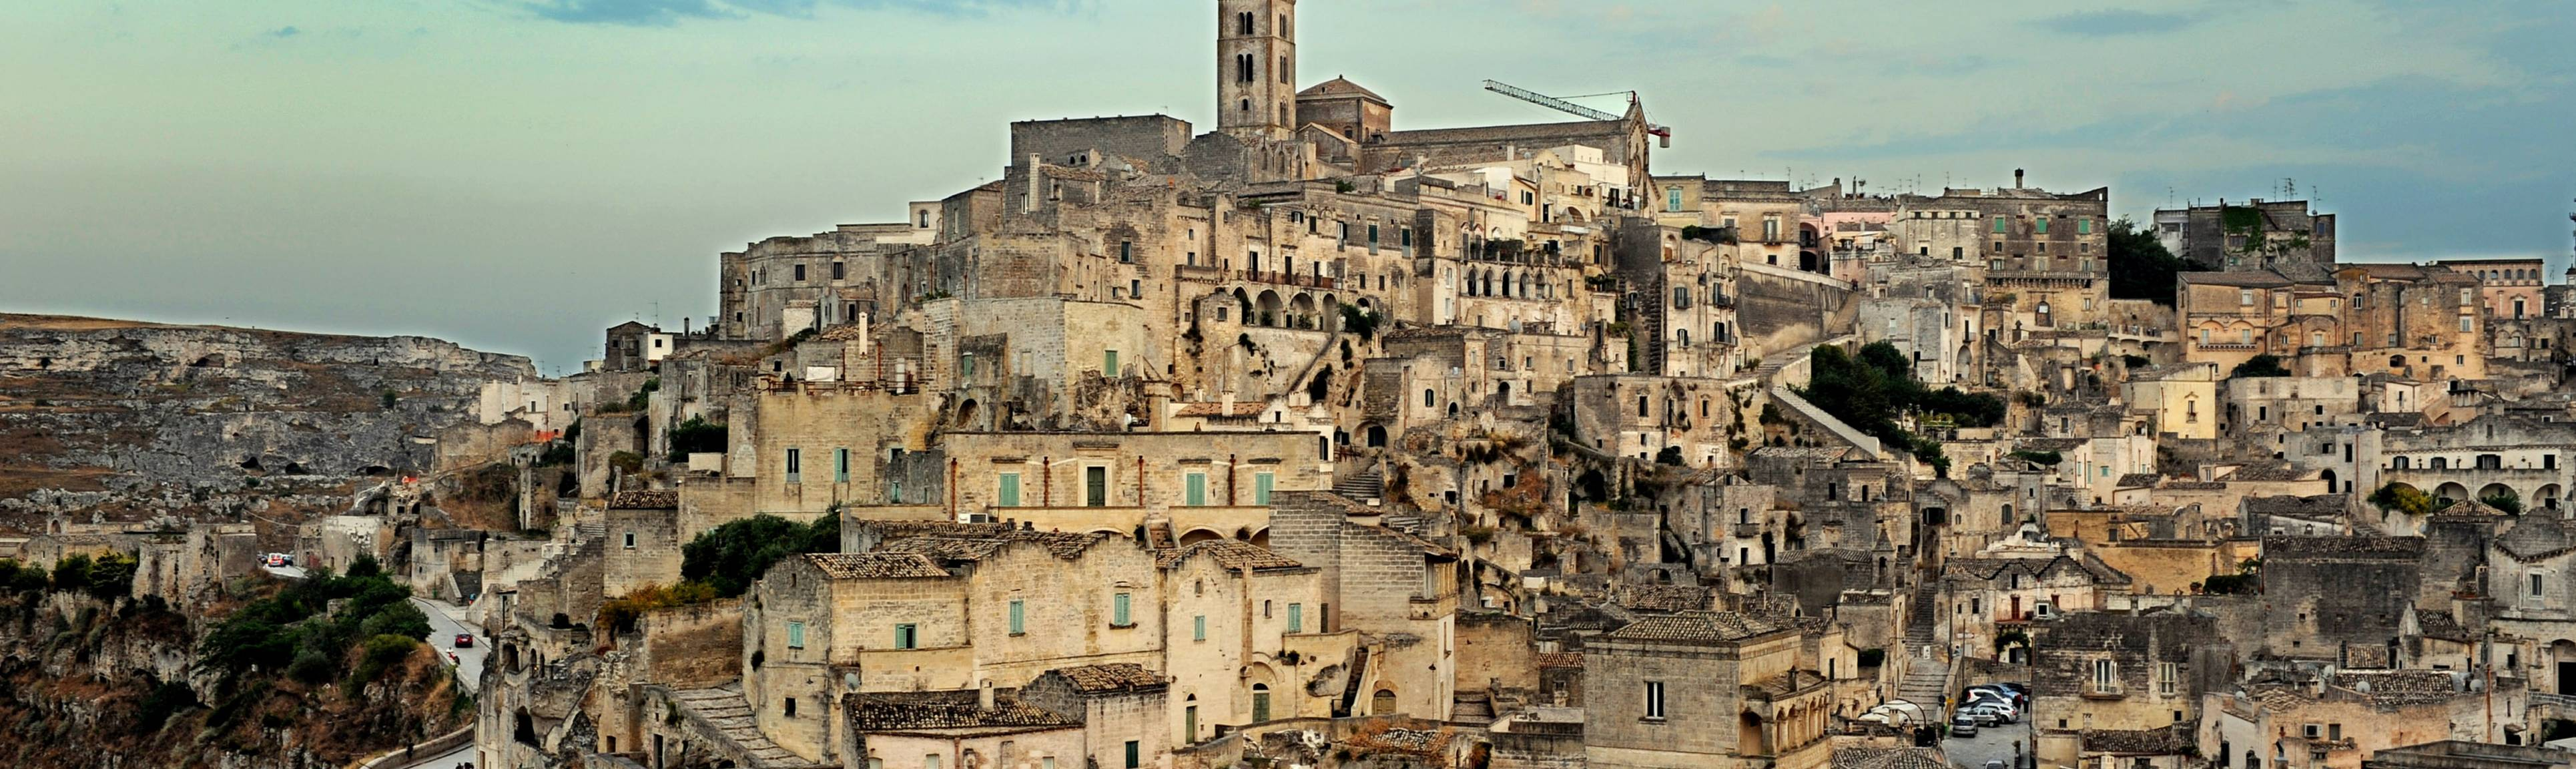 Approaching Matera, view of rocky outcrop in Southern Italy